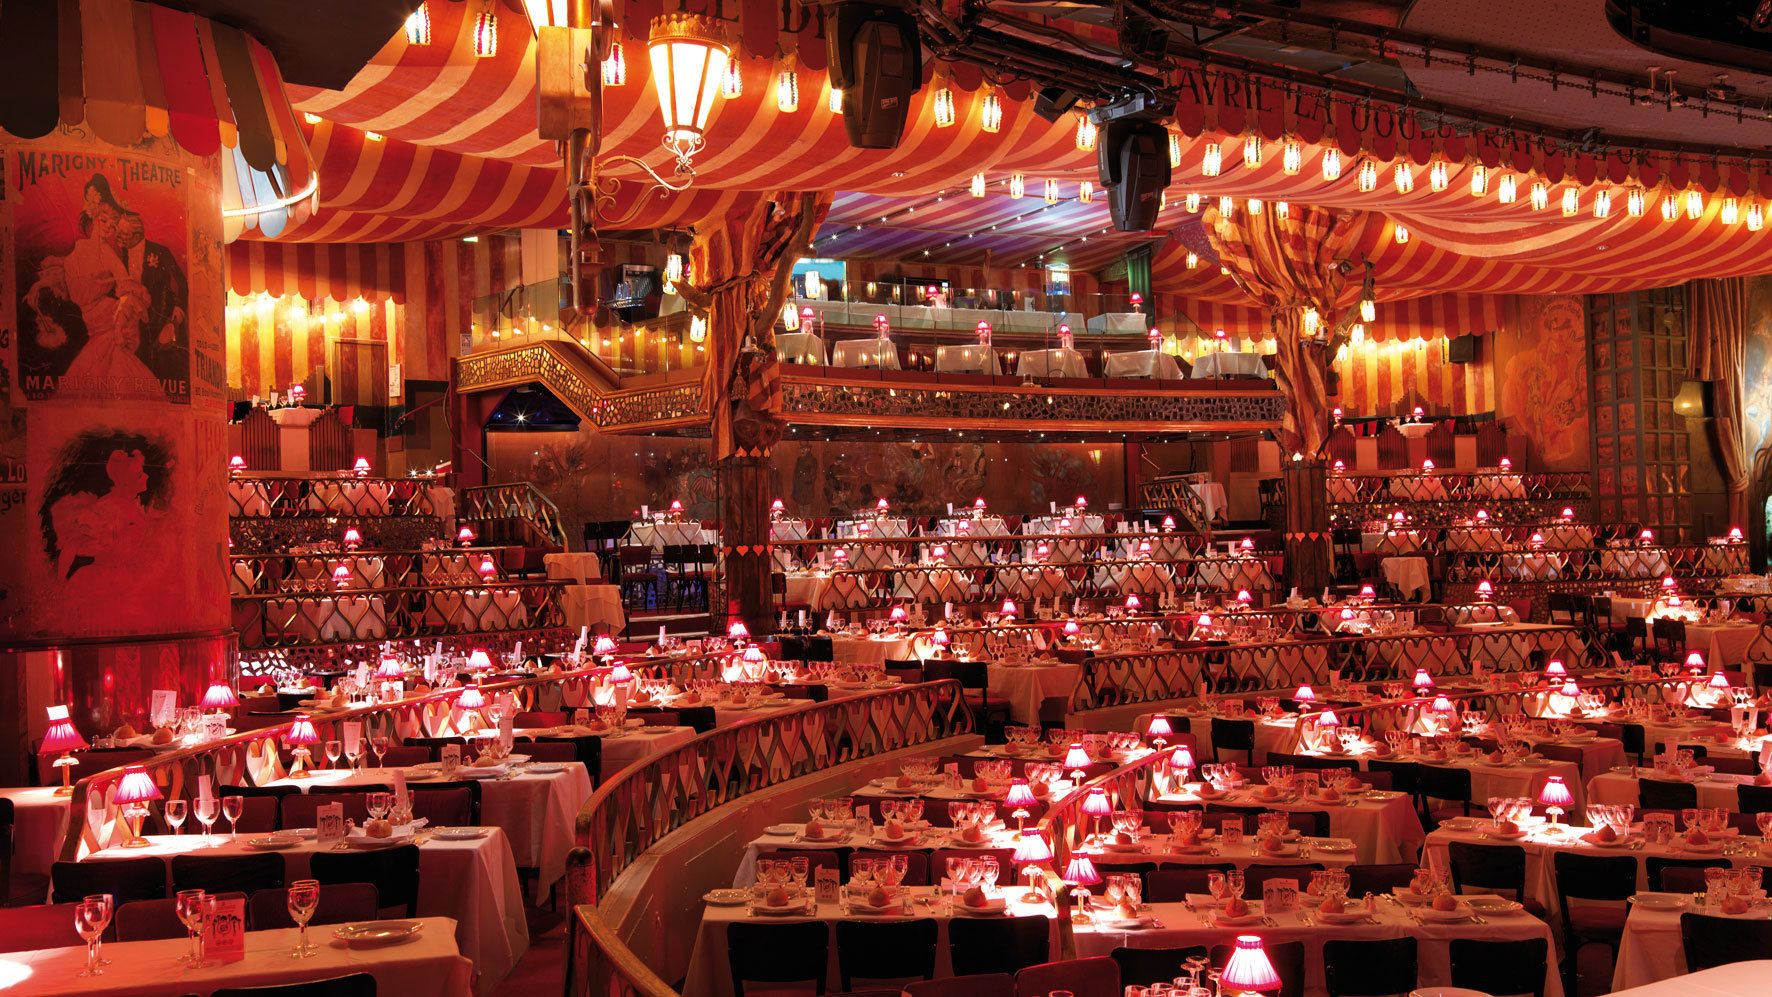 Dining room at the Moulin Rouge.